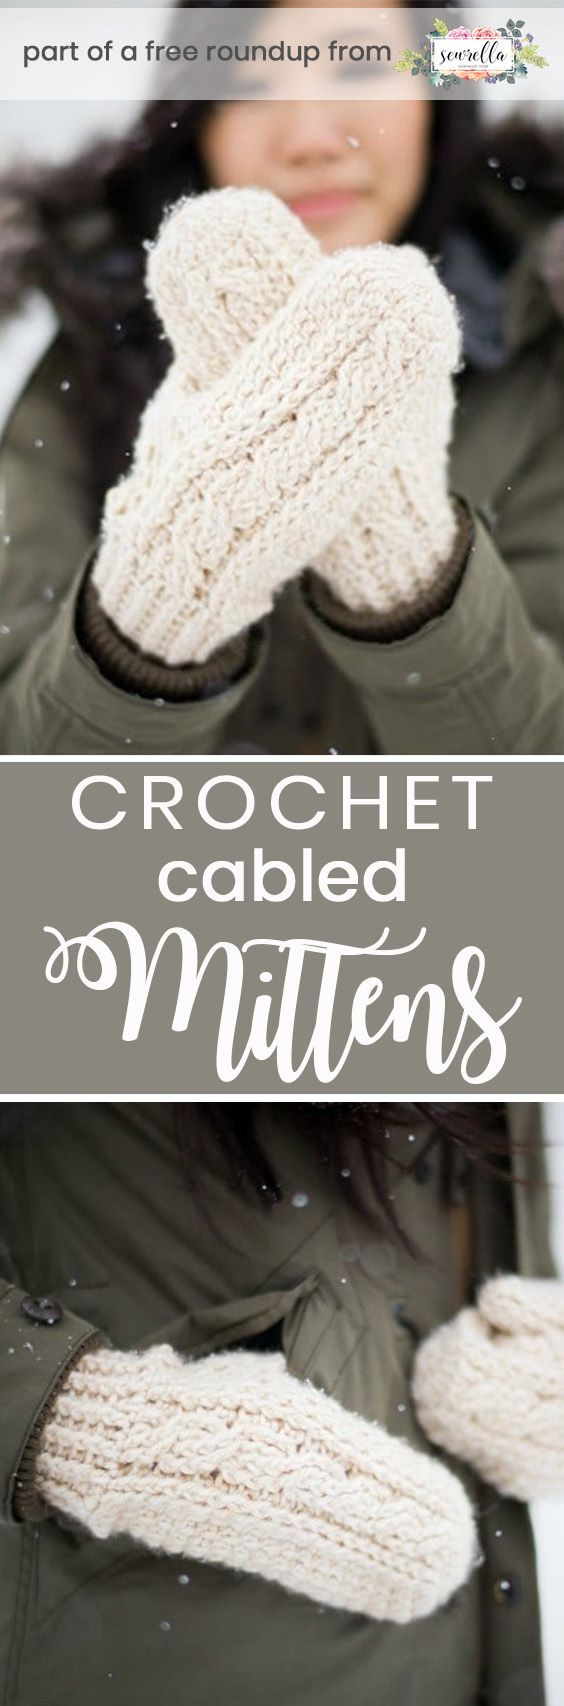 Get the free crochet pattern for these cabled crochet mittens from All About Ami featured in my crochet that looks knit FREE pattern roundup!